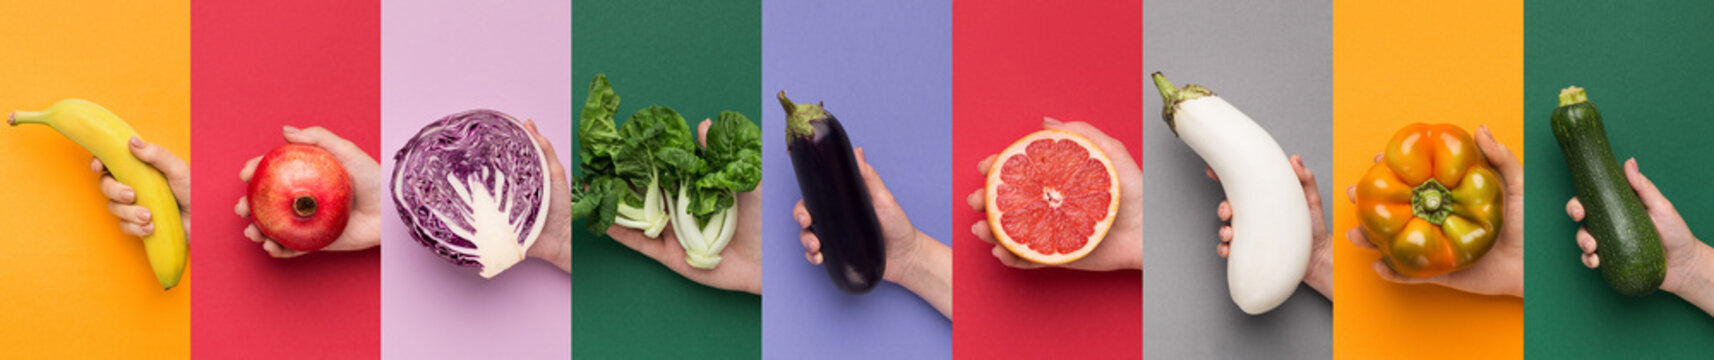 Nine different backgrounds with fruits and vegetables